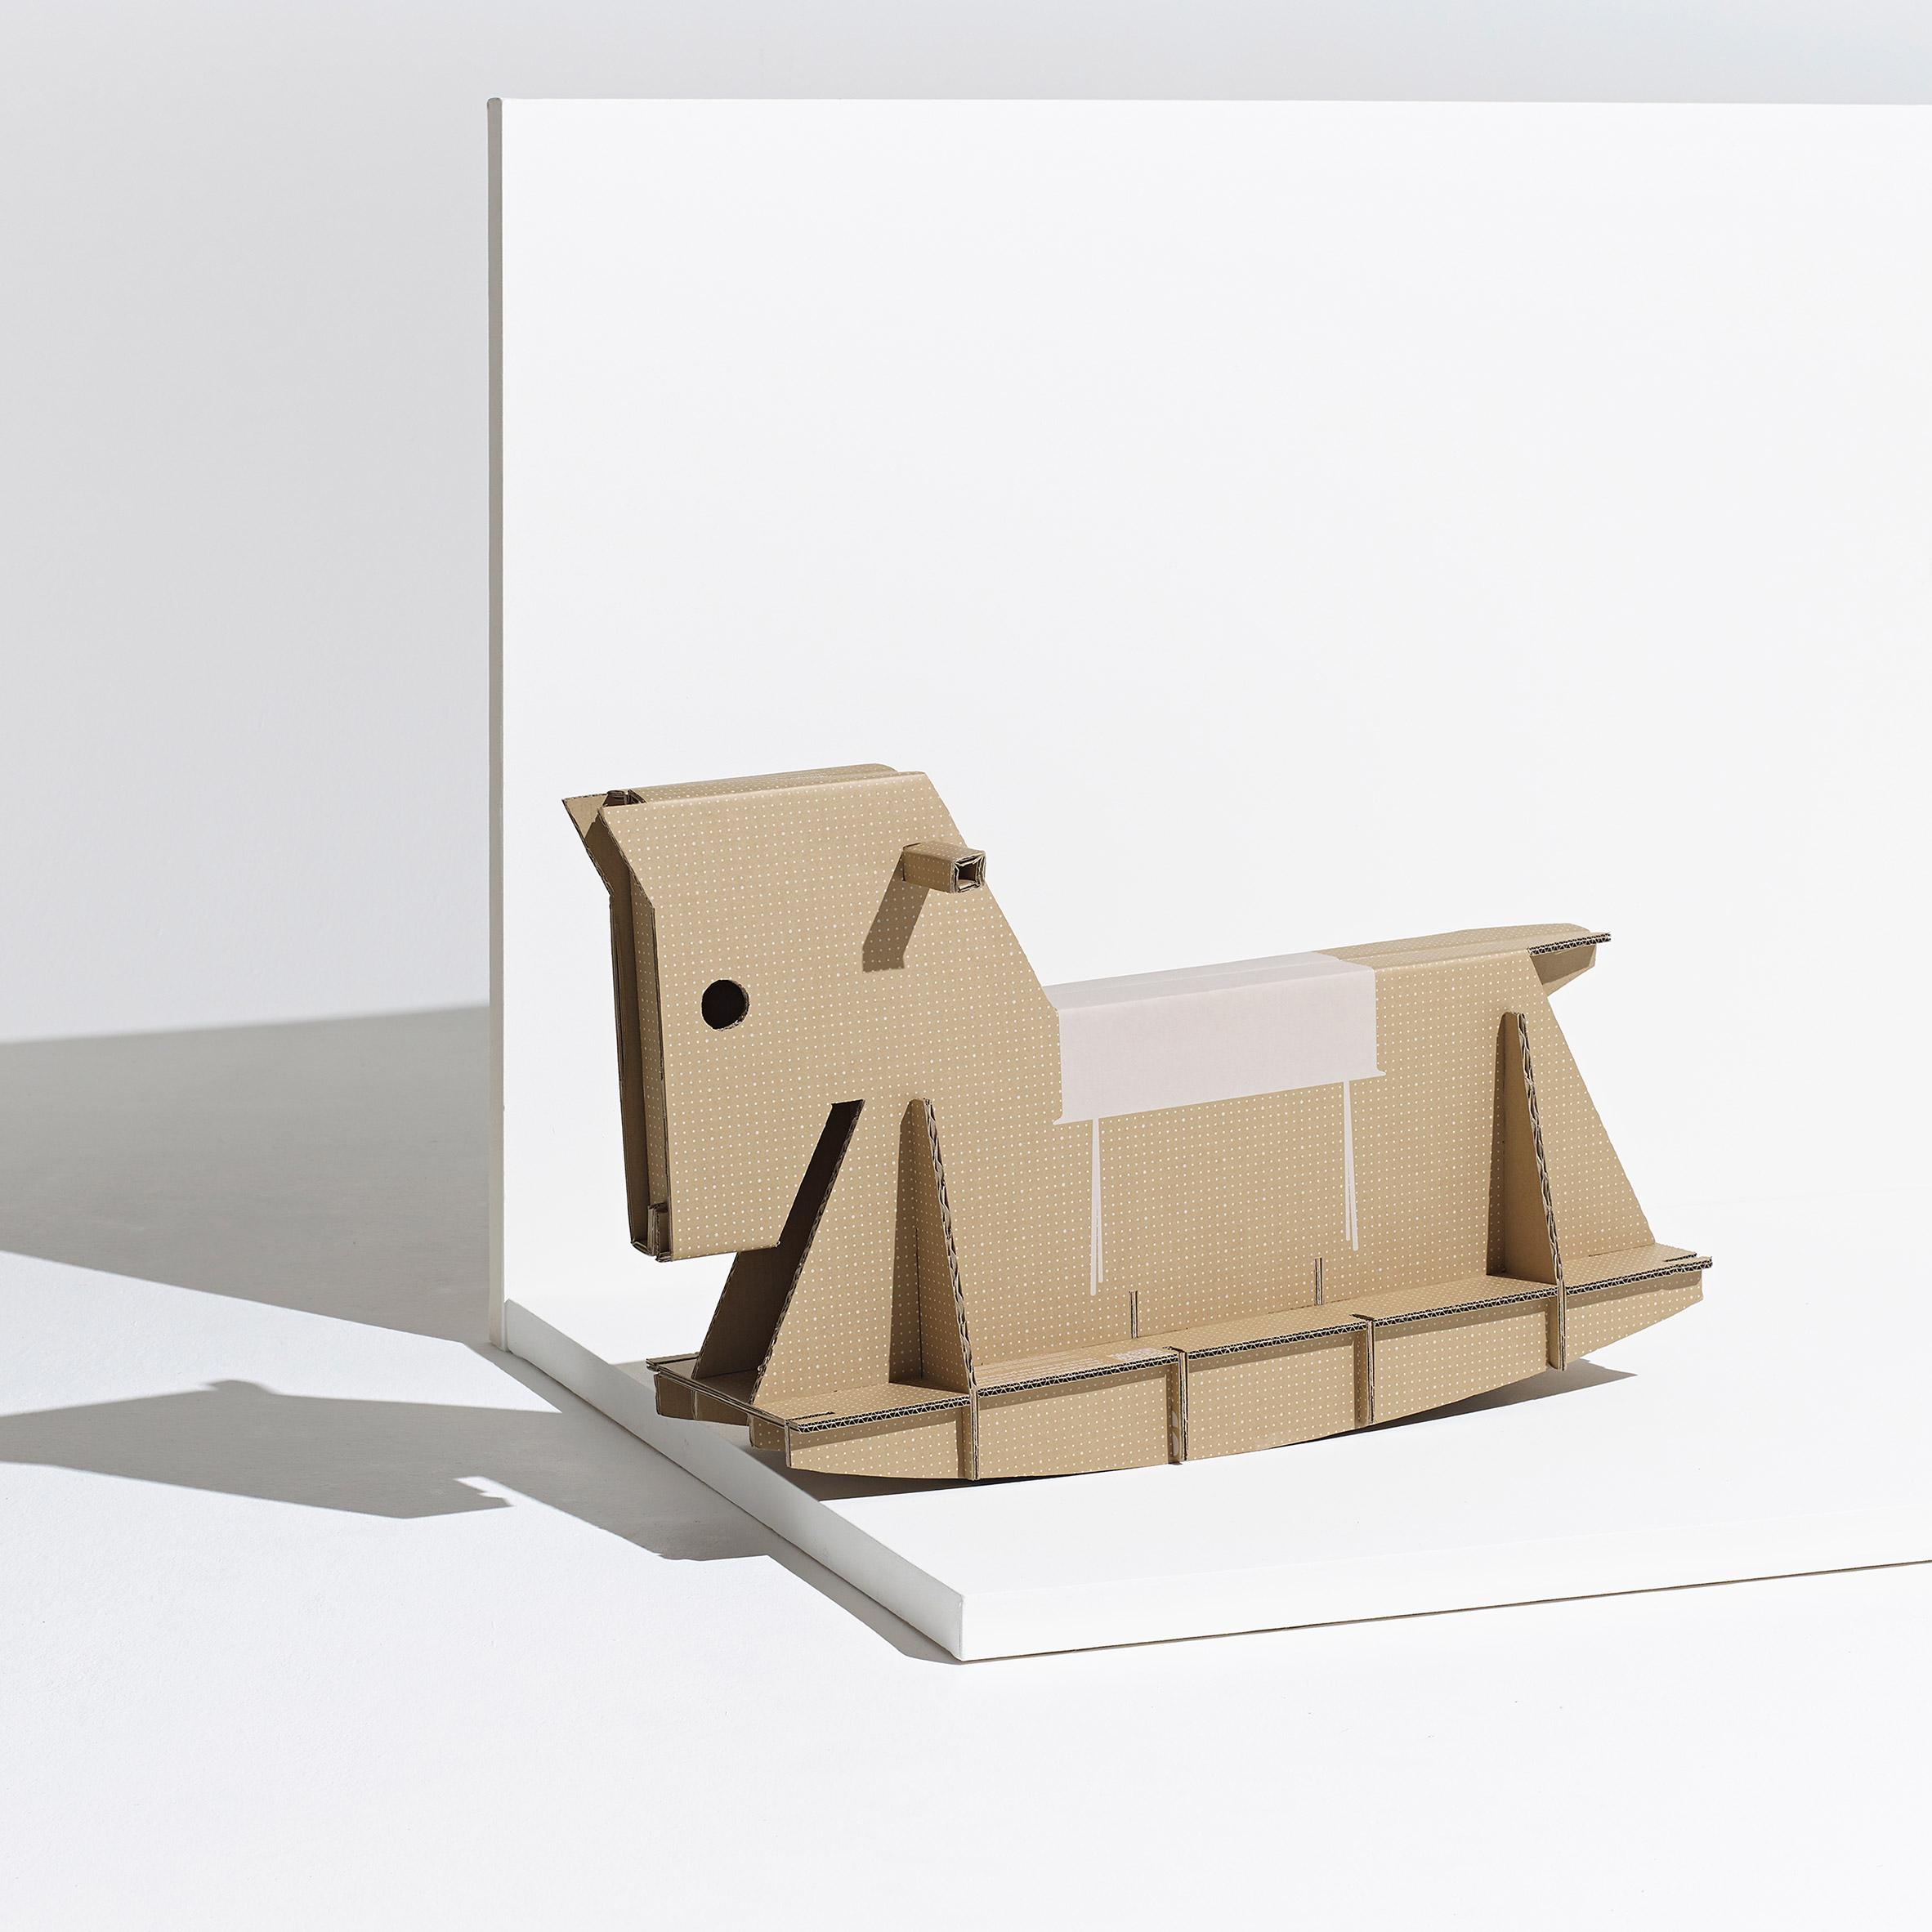 The Rider rocking horse by André Cardoso